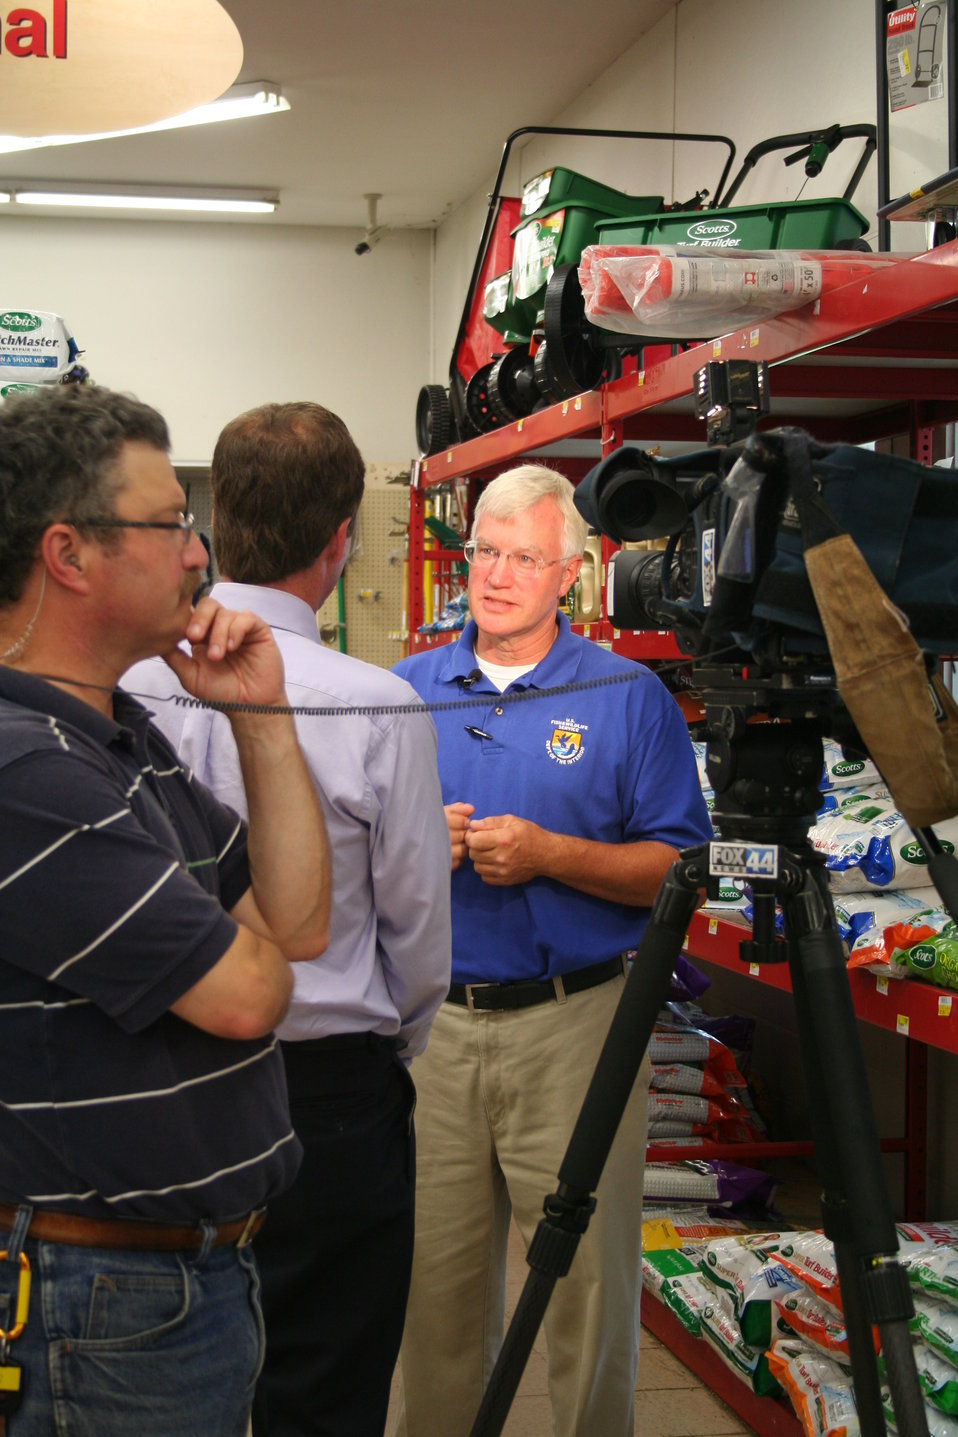 USFWS Dave Tilton discusses sea lamprey control with media